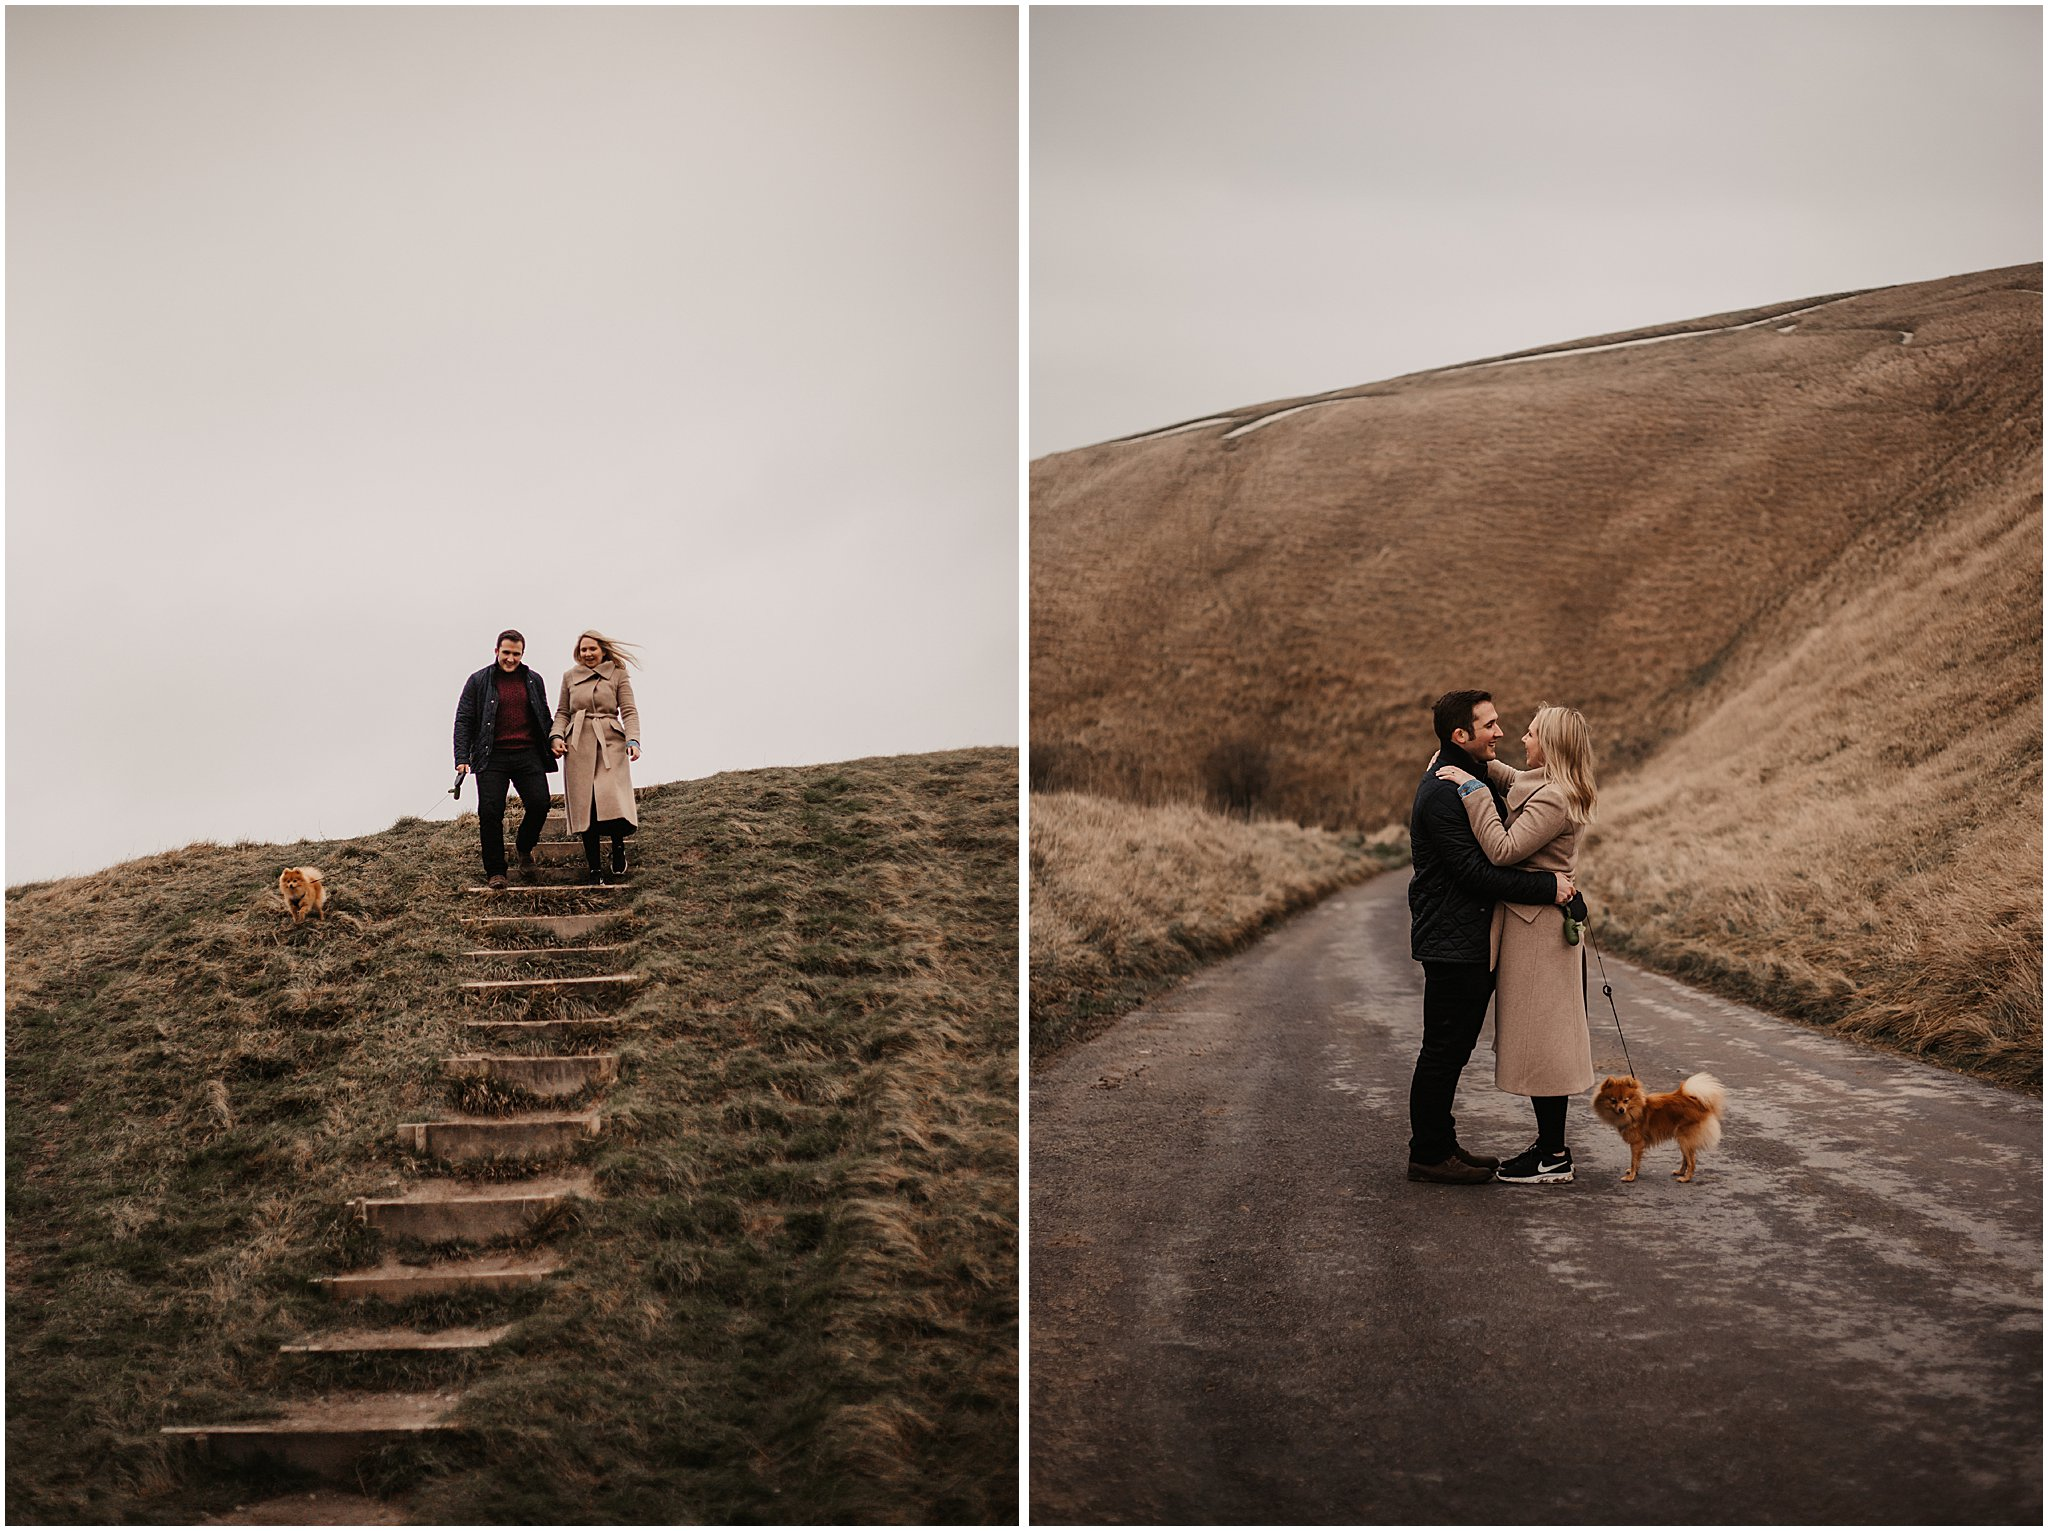 Mike & Charley_s Winter Engagement Shoot Wiltshire-129.jpg